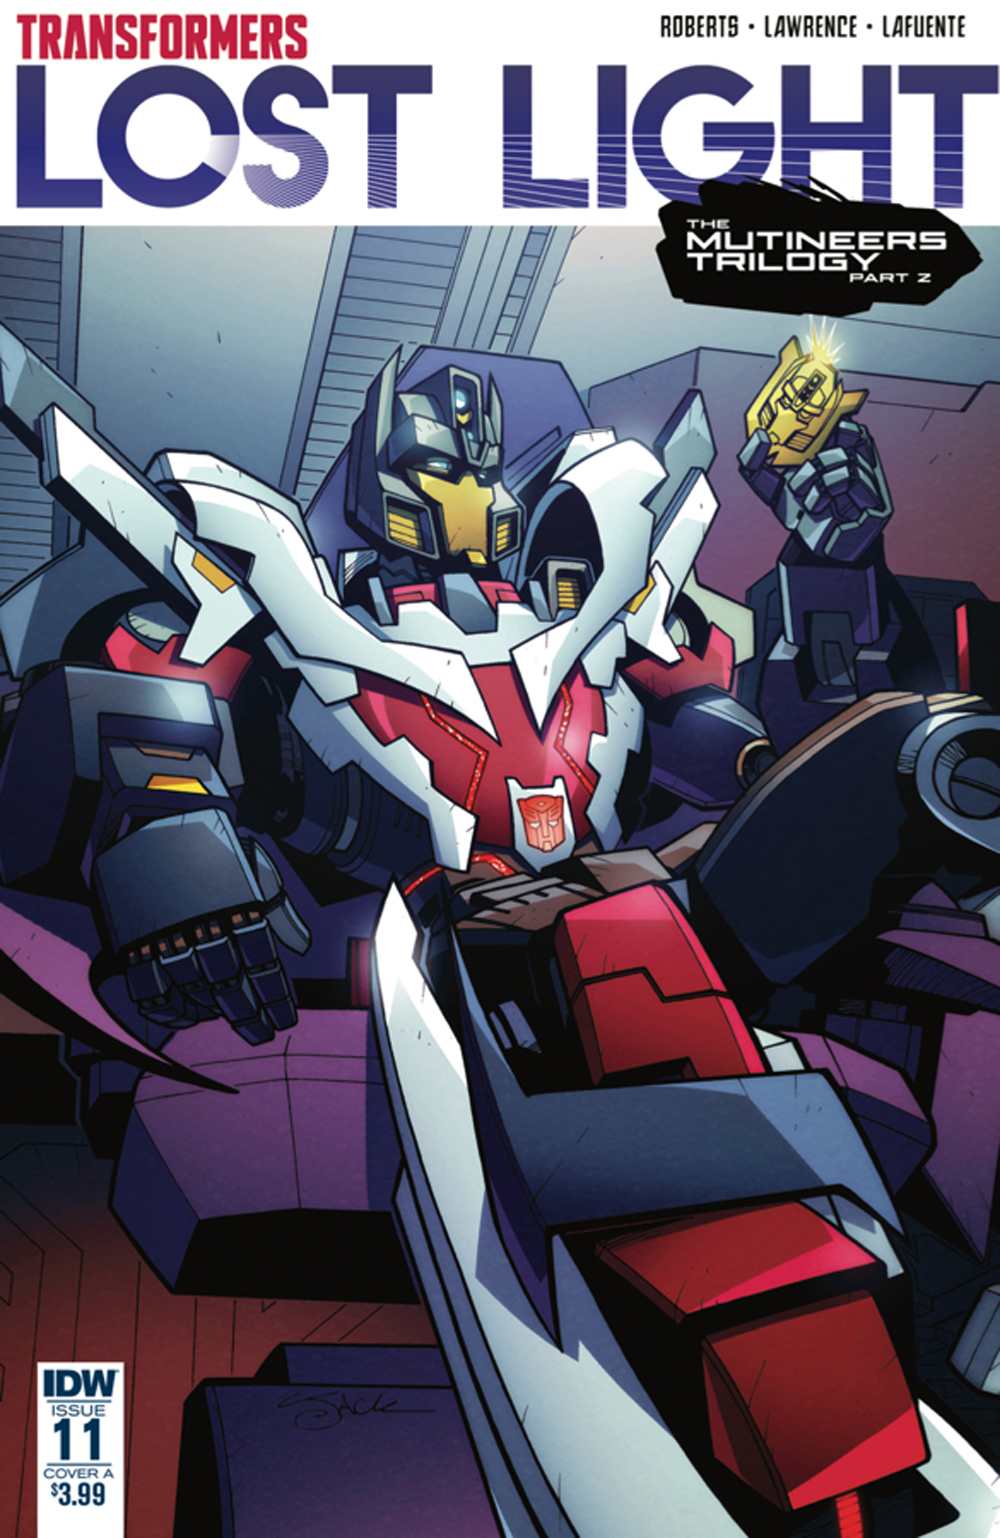 TRANSFORMERS LOST LIGHT #11 CVR A LAWRENCE